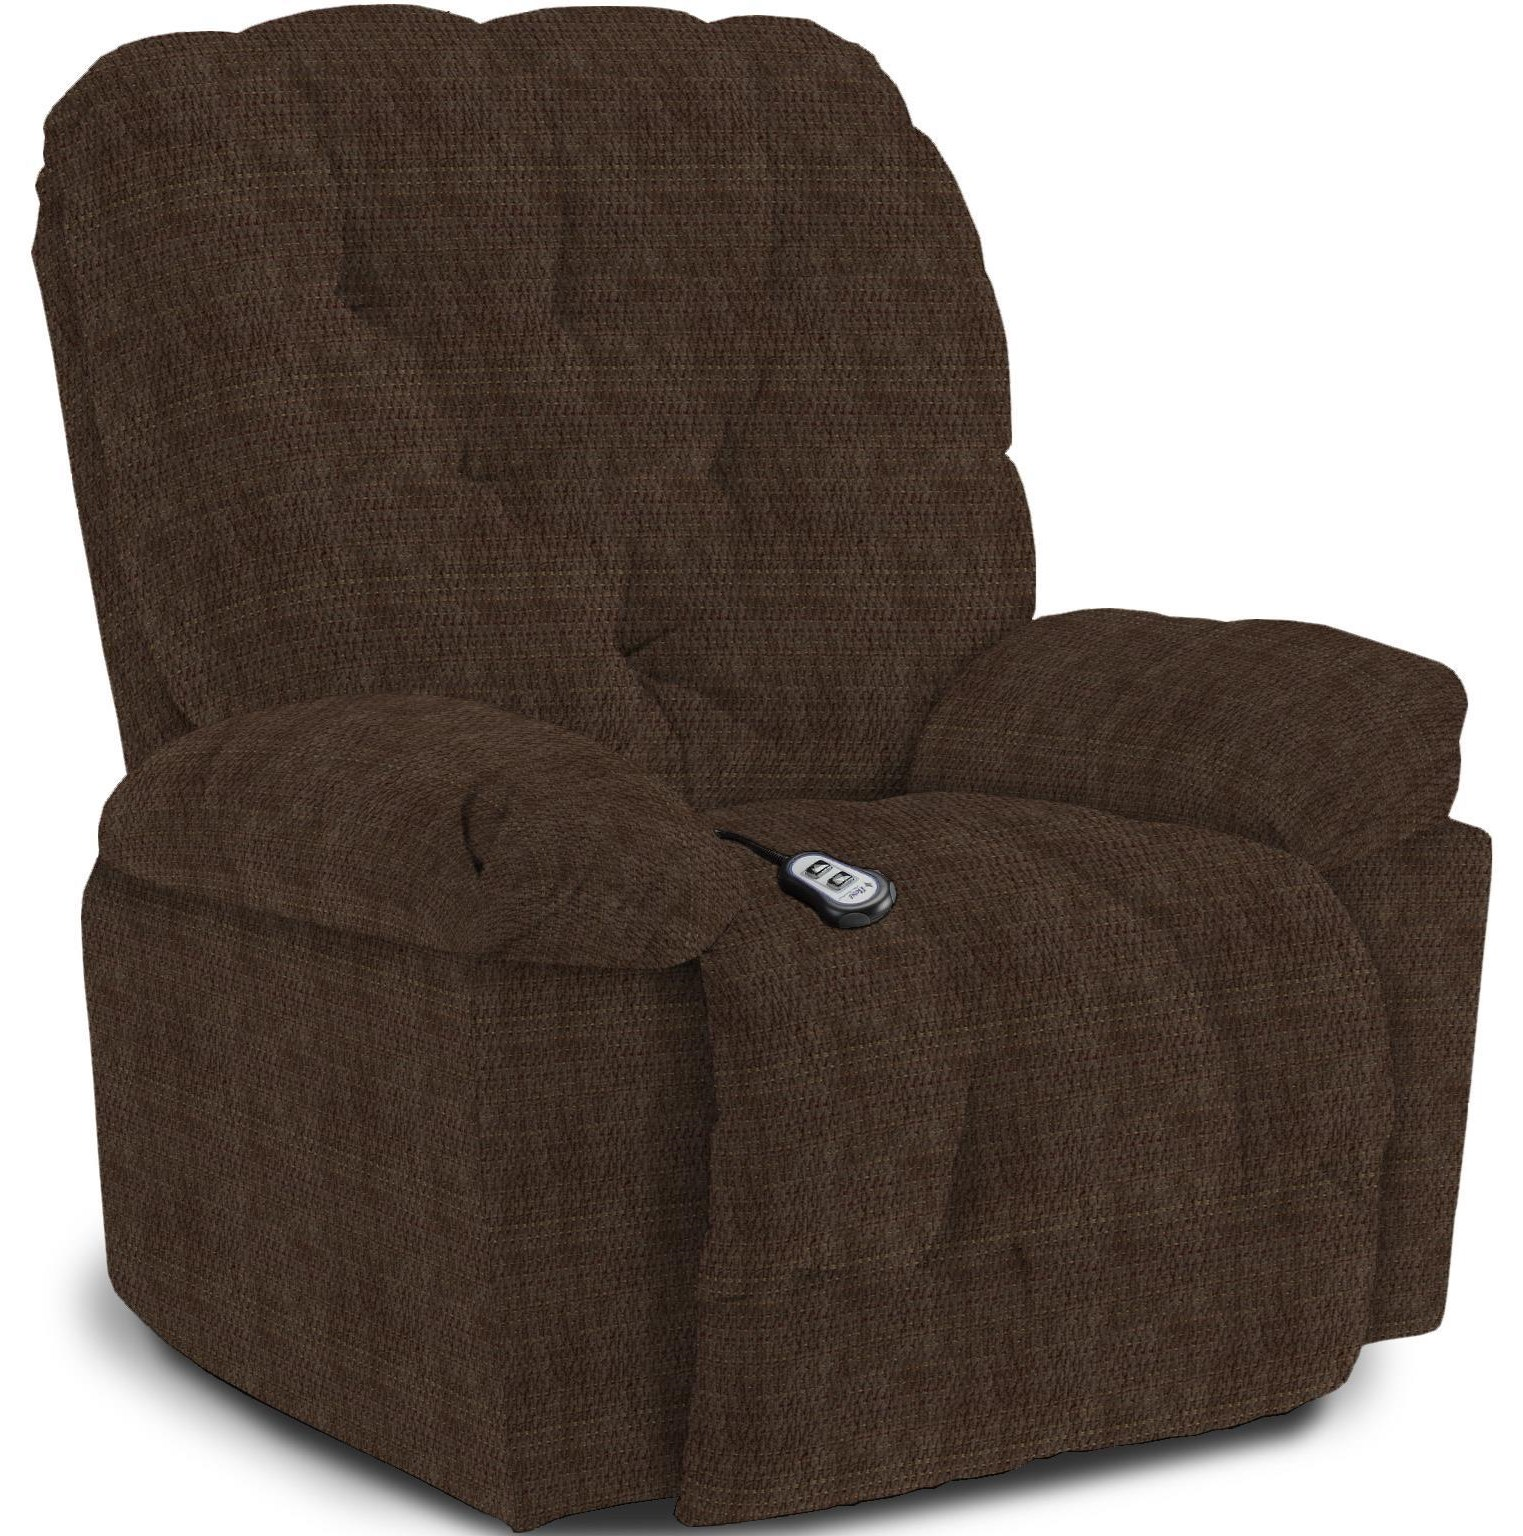 Charger Wallsaver Recliner by Best Home Furnishings at Crowley Furniture & Mattress